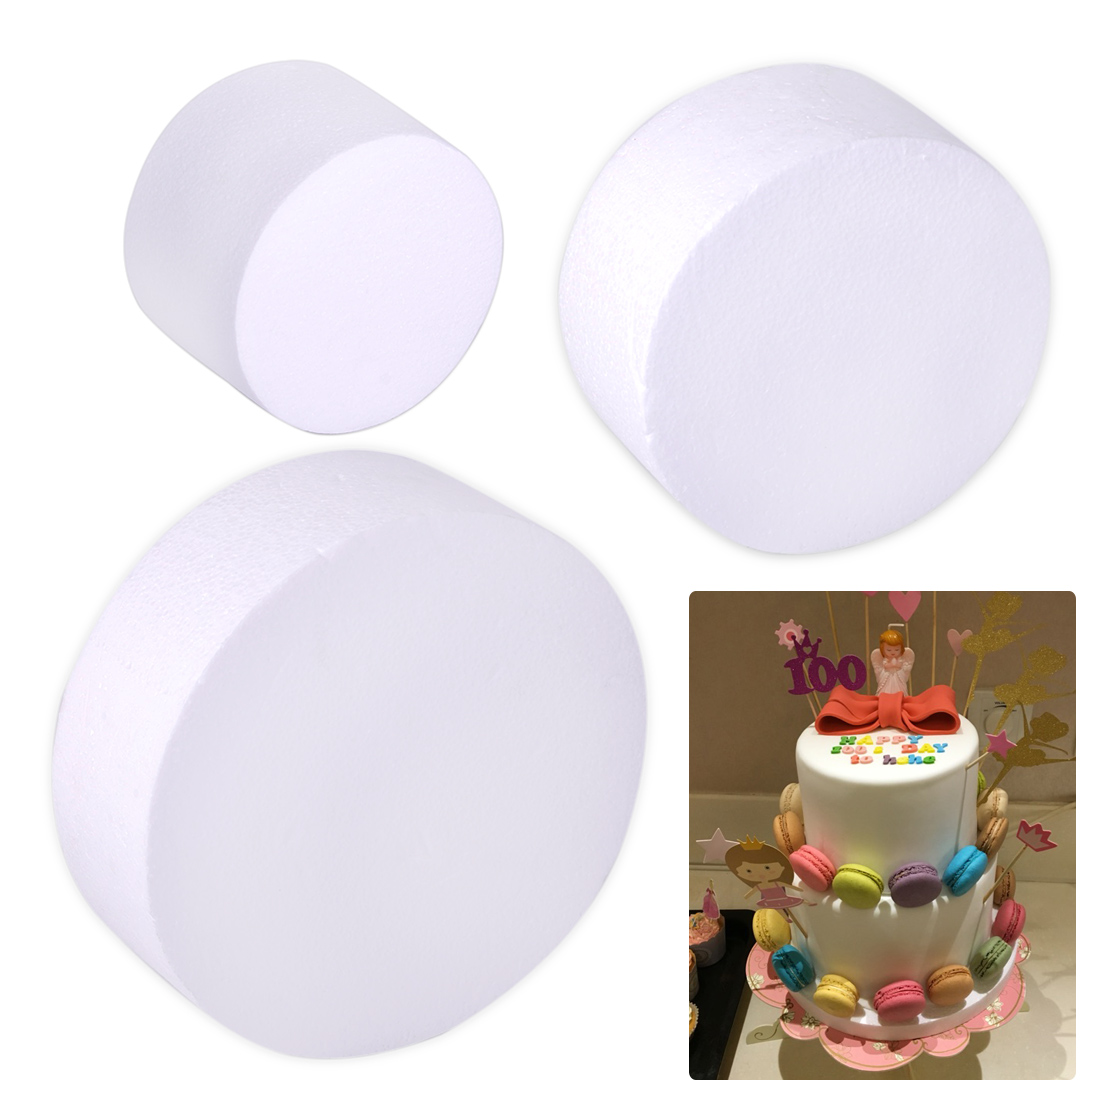 15cm Polystyrene Deep Cake Dummy to DecorateStyrofoam Shapes for Crafts